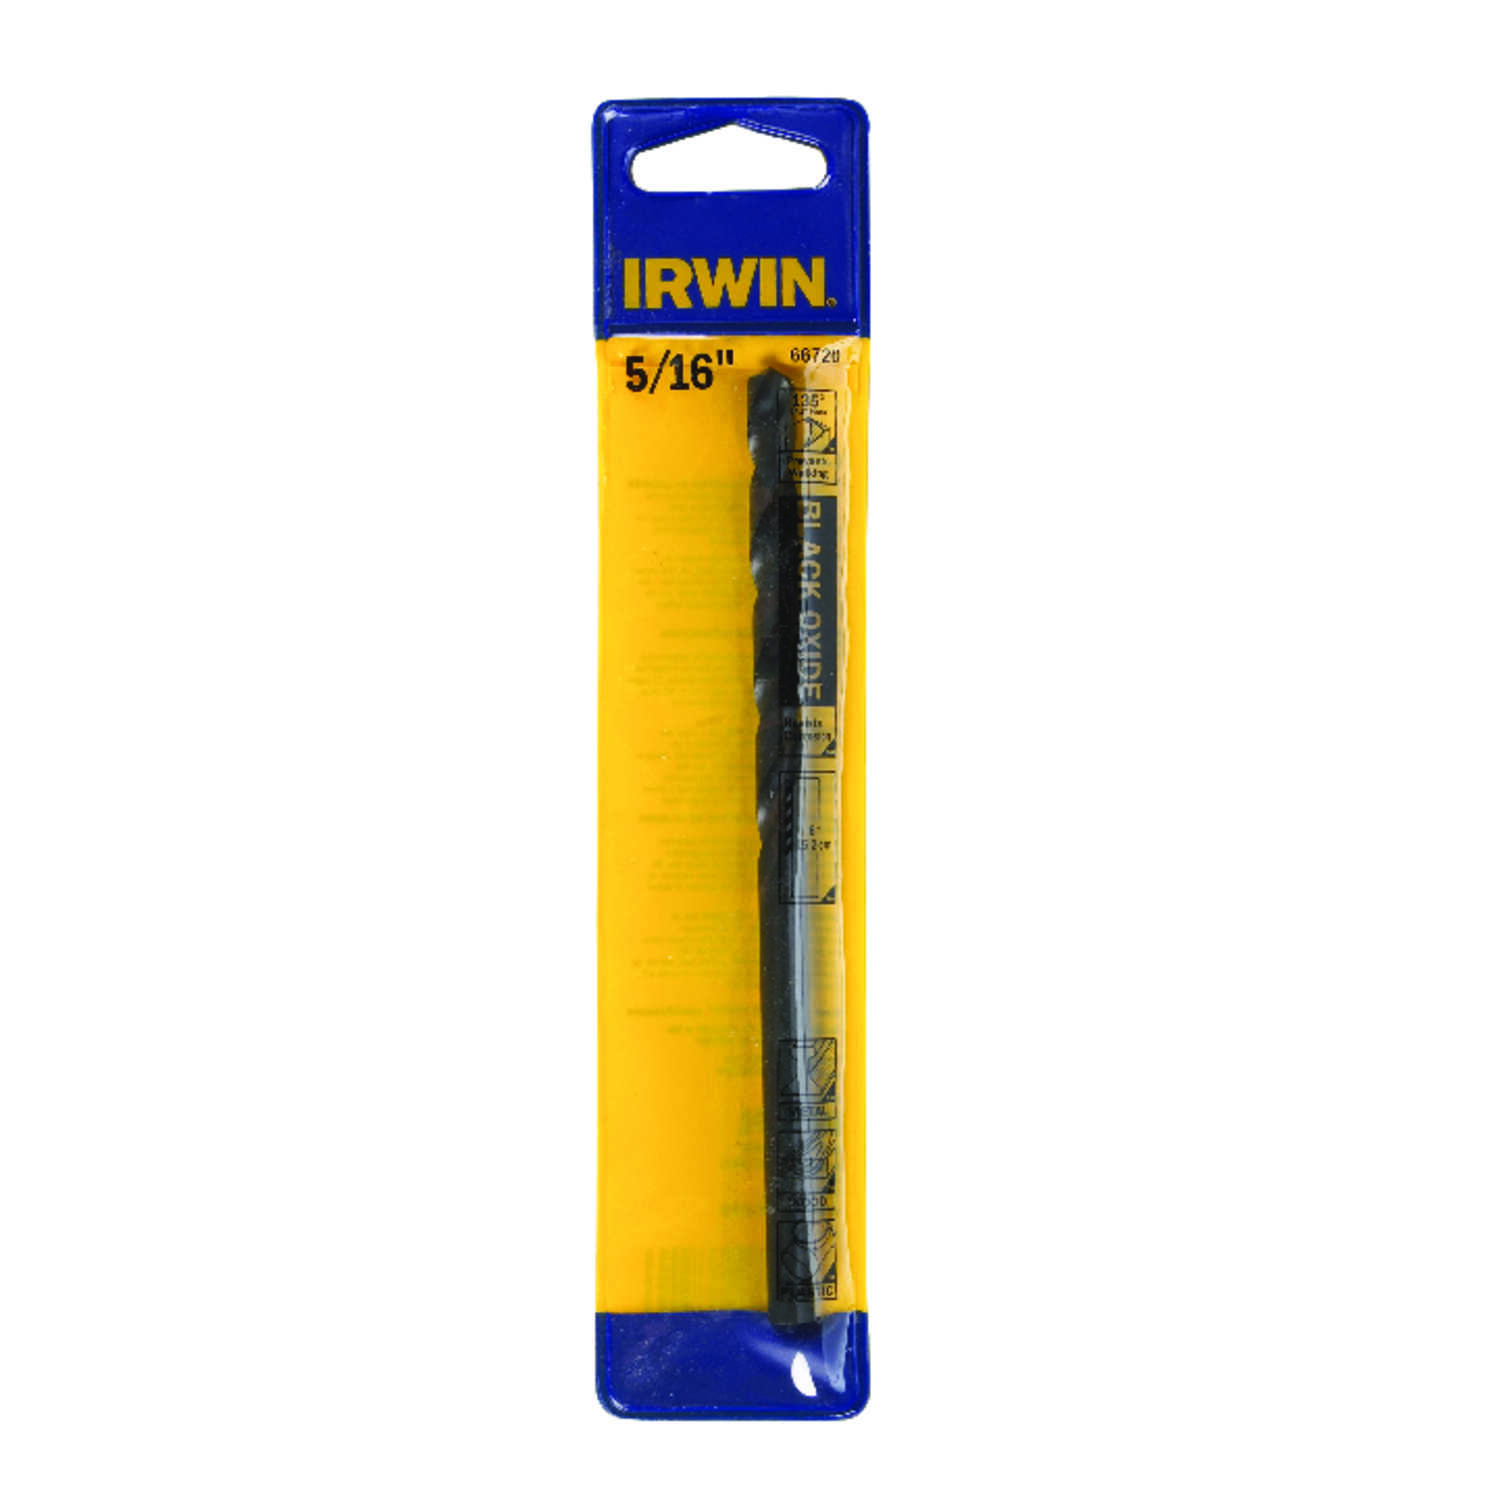 Irwin  5/16 in. Dia. x 6 in. L High Speed Steel  Split Point Drill Bit  1 pc.